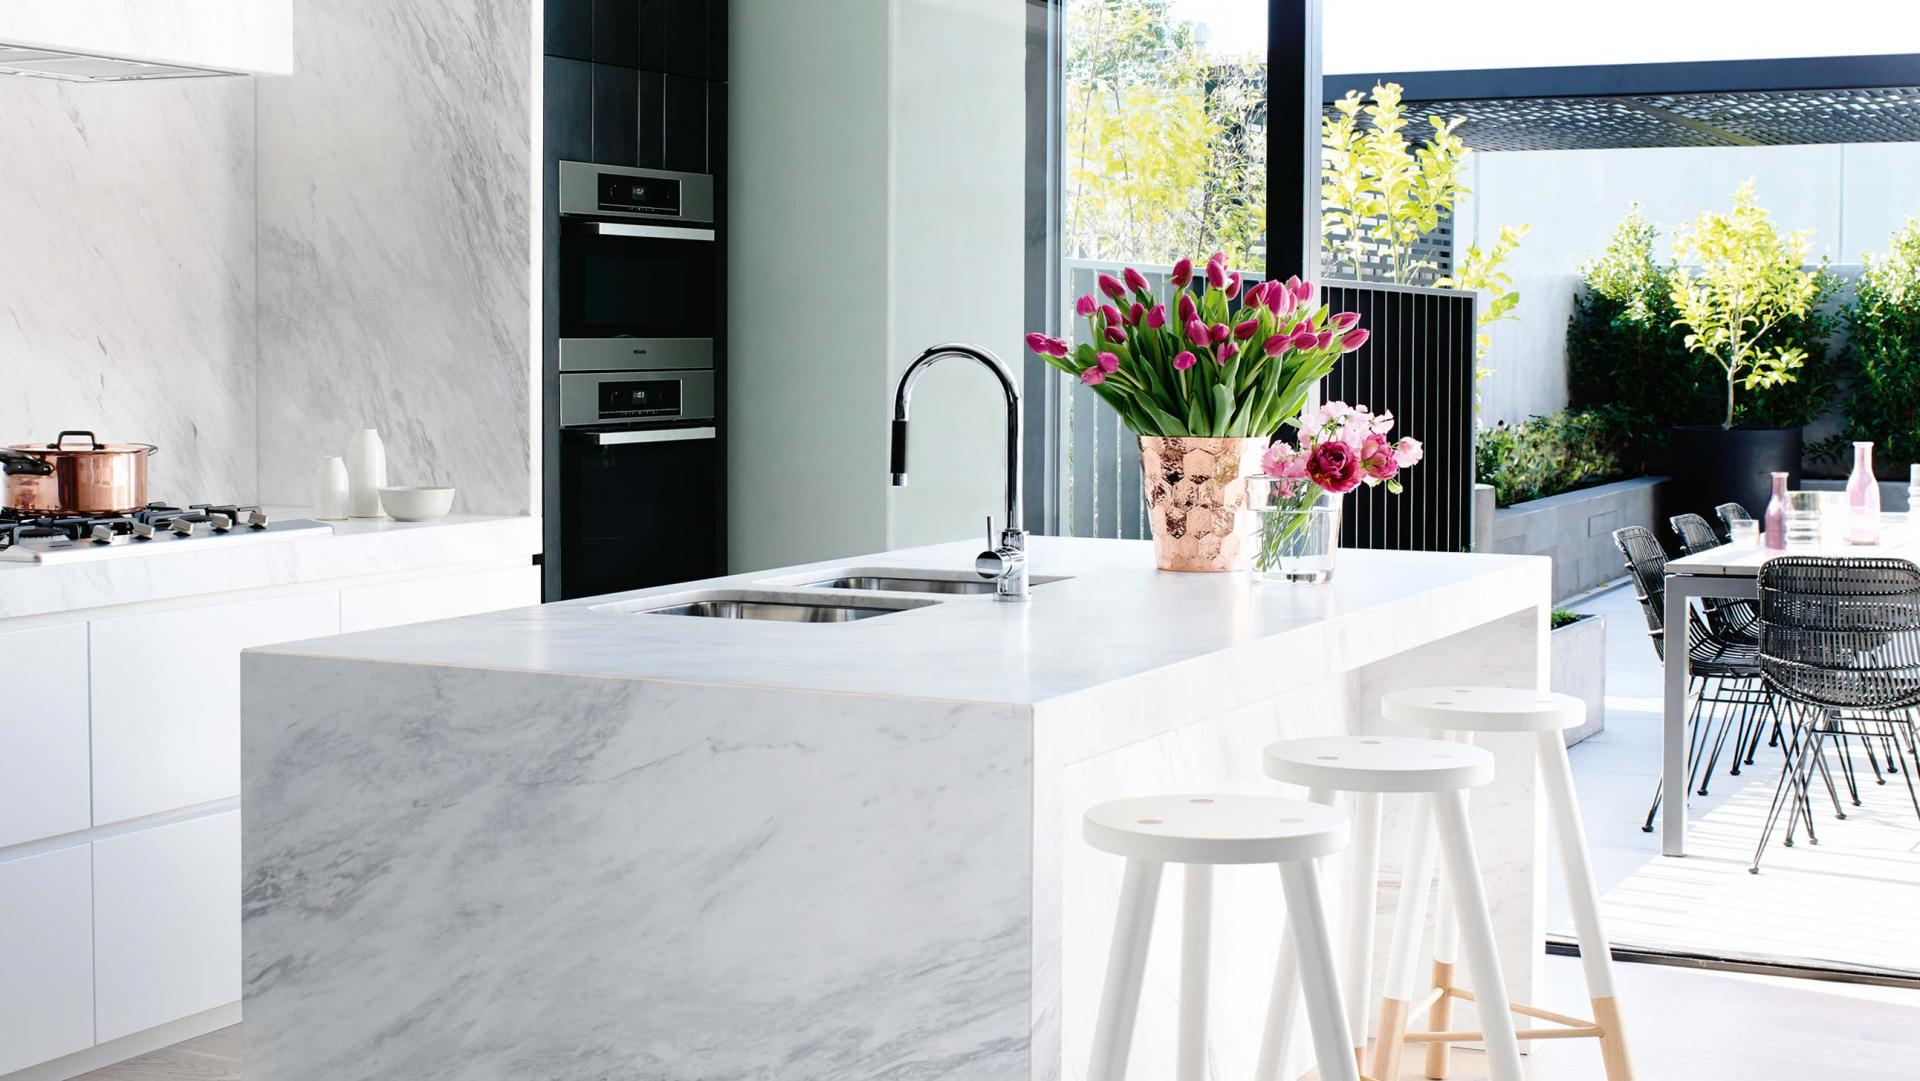 KITCHEN DETAILING   Give your kitchen a detail clean and see the difference. Our kitchen detailing provides your kitchen a new life.